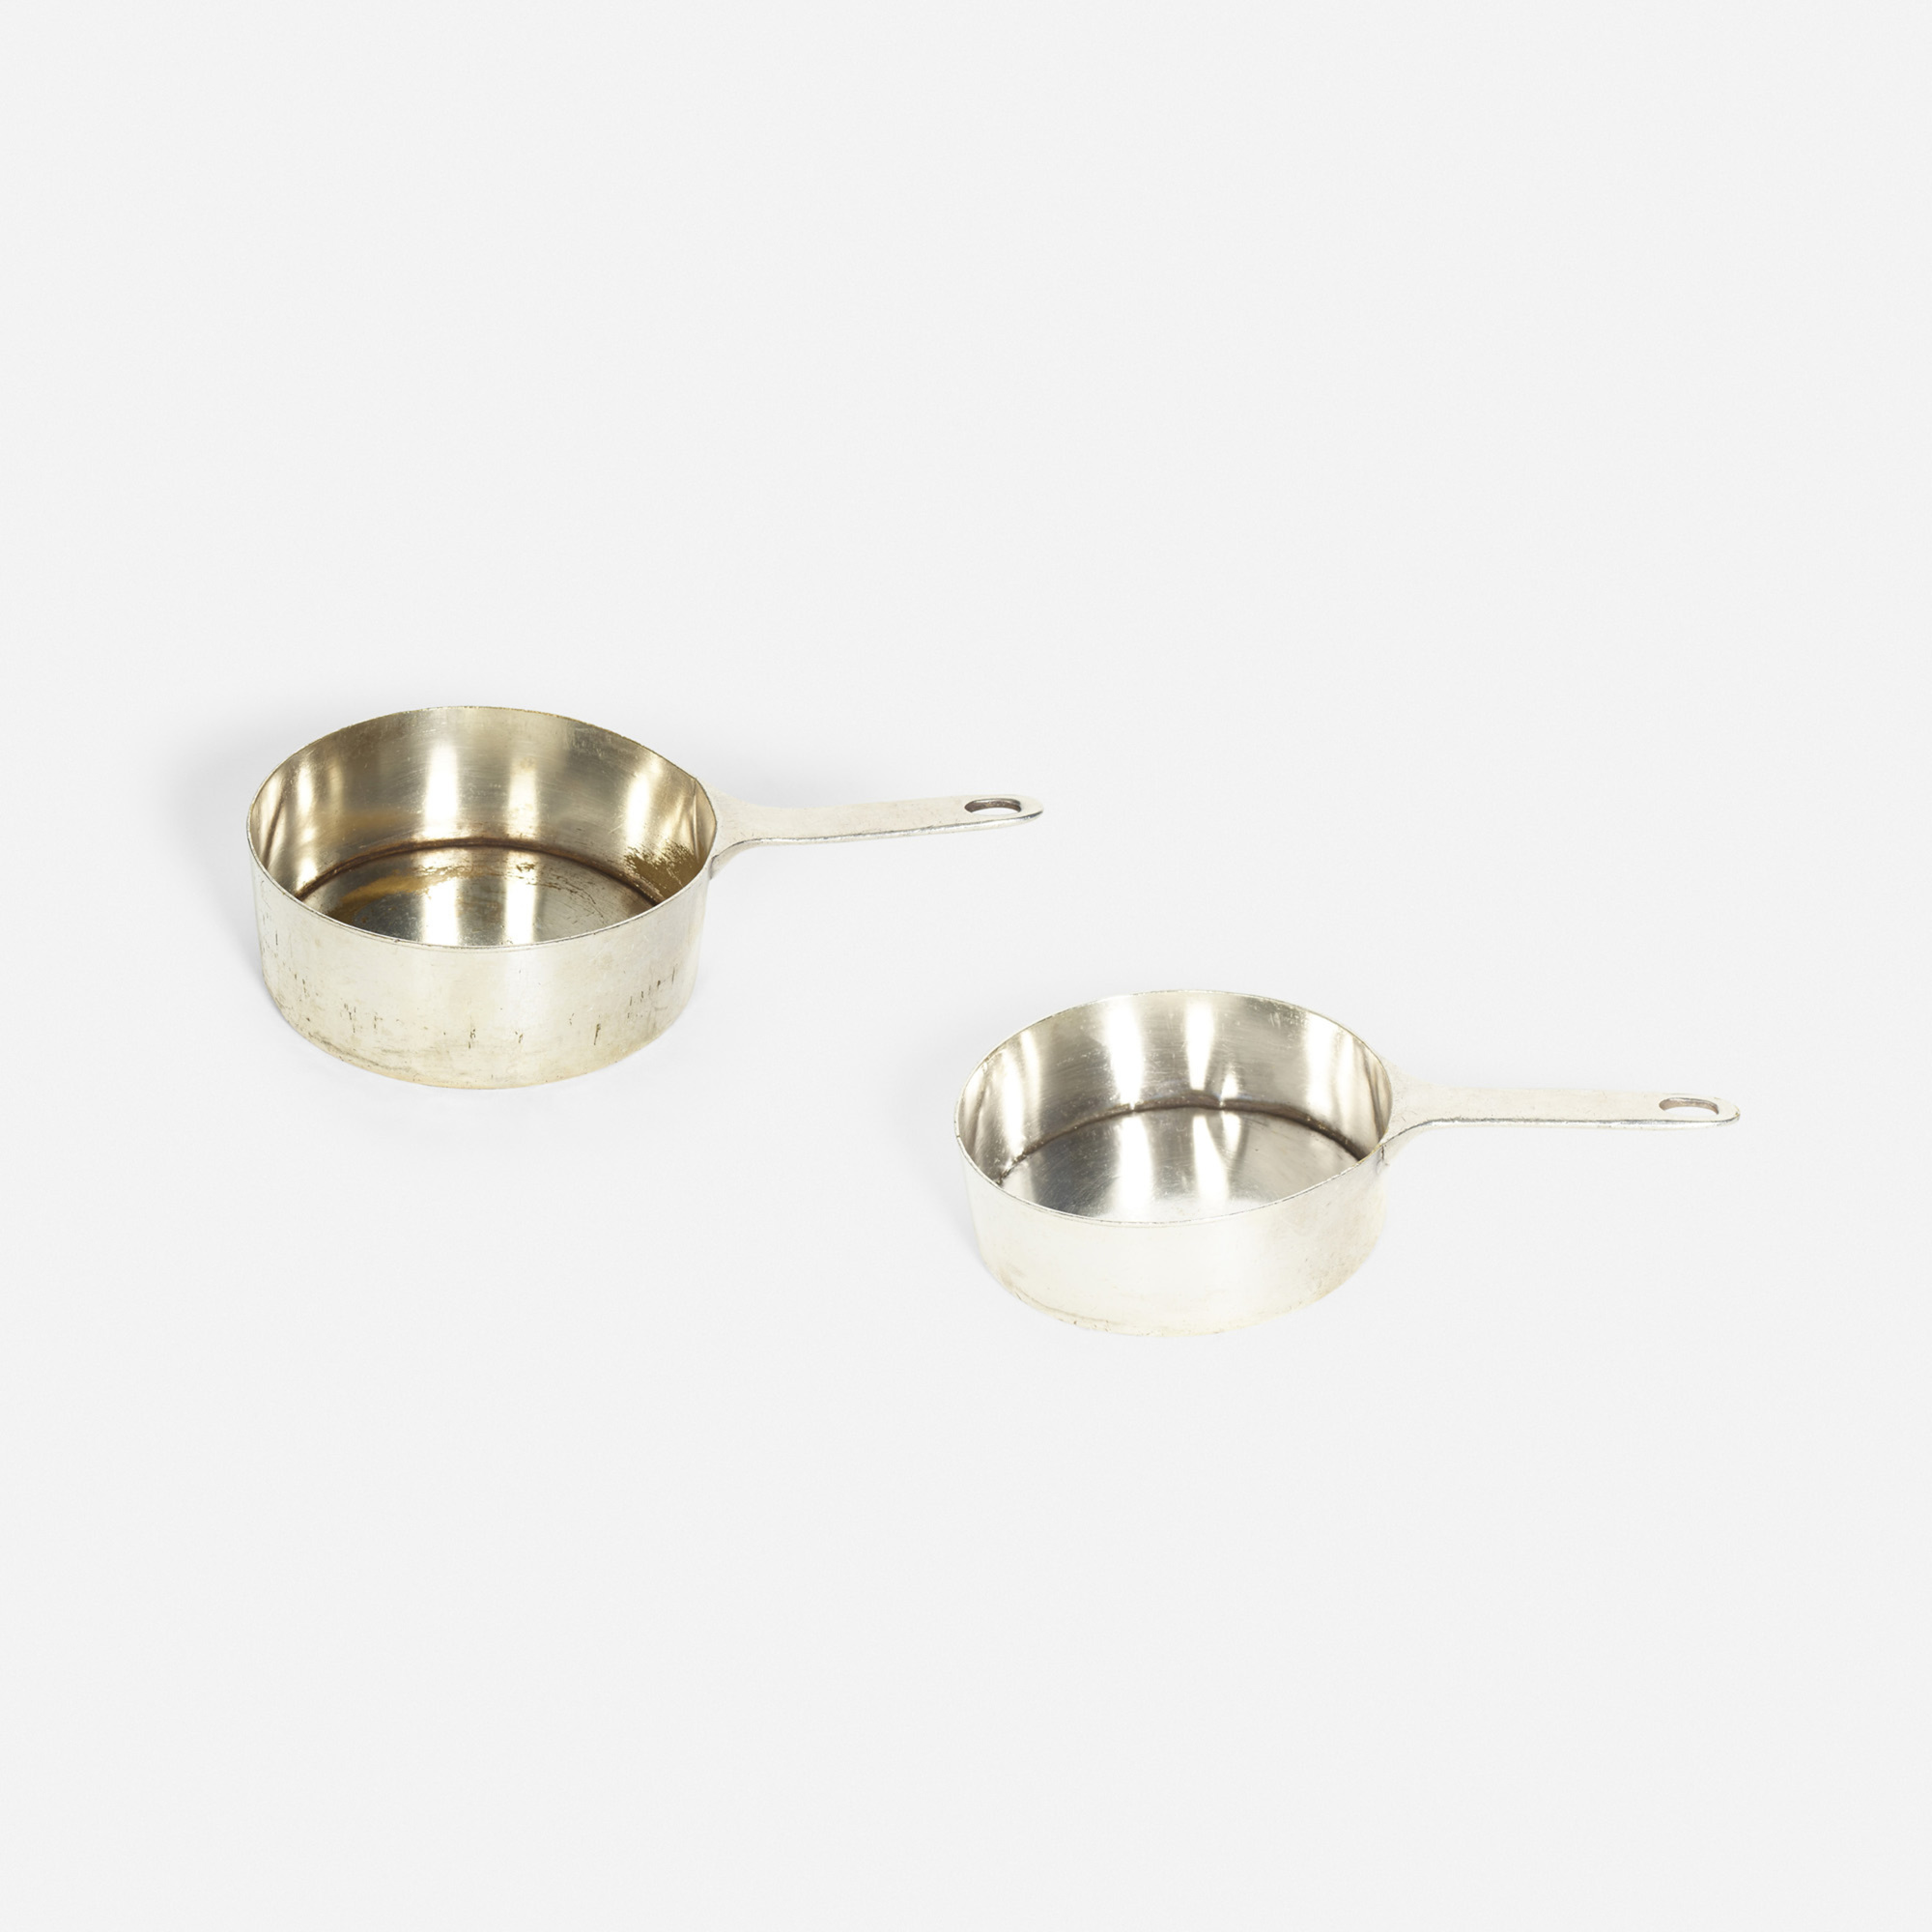 872: Garth and Ada Louise Huxtable / sauce pots from the kitchen of The Four Seasons, set of two (1 of 1)